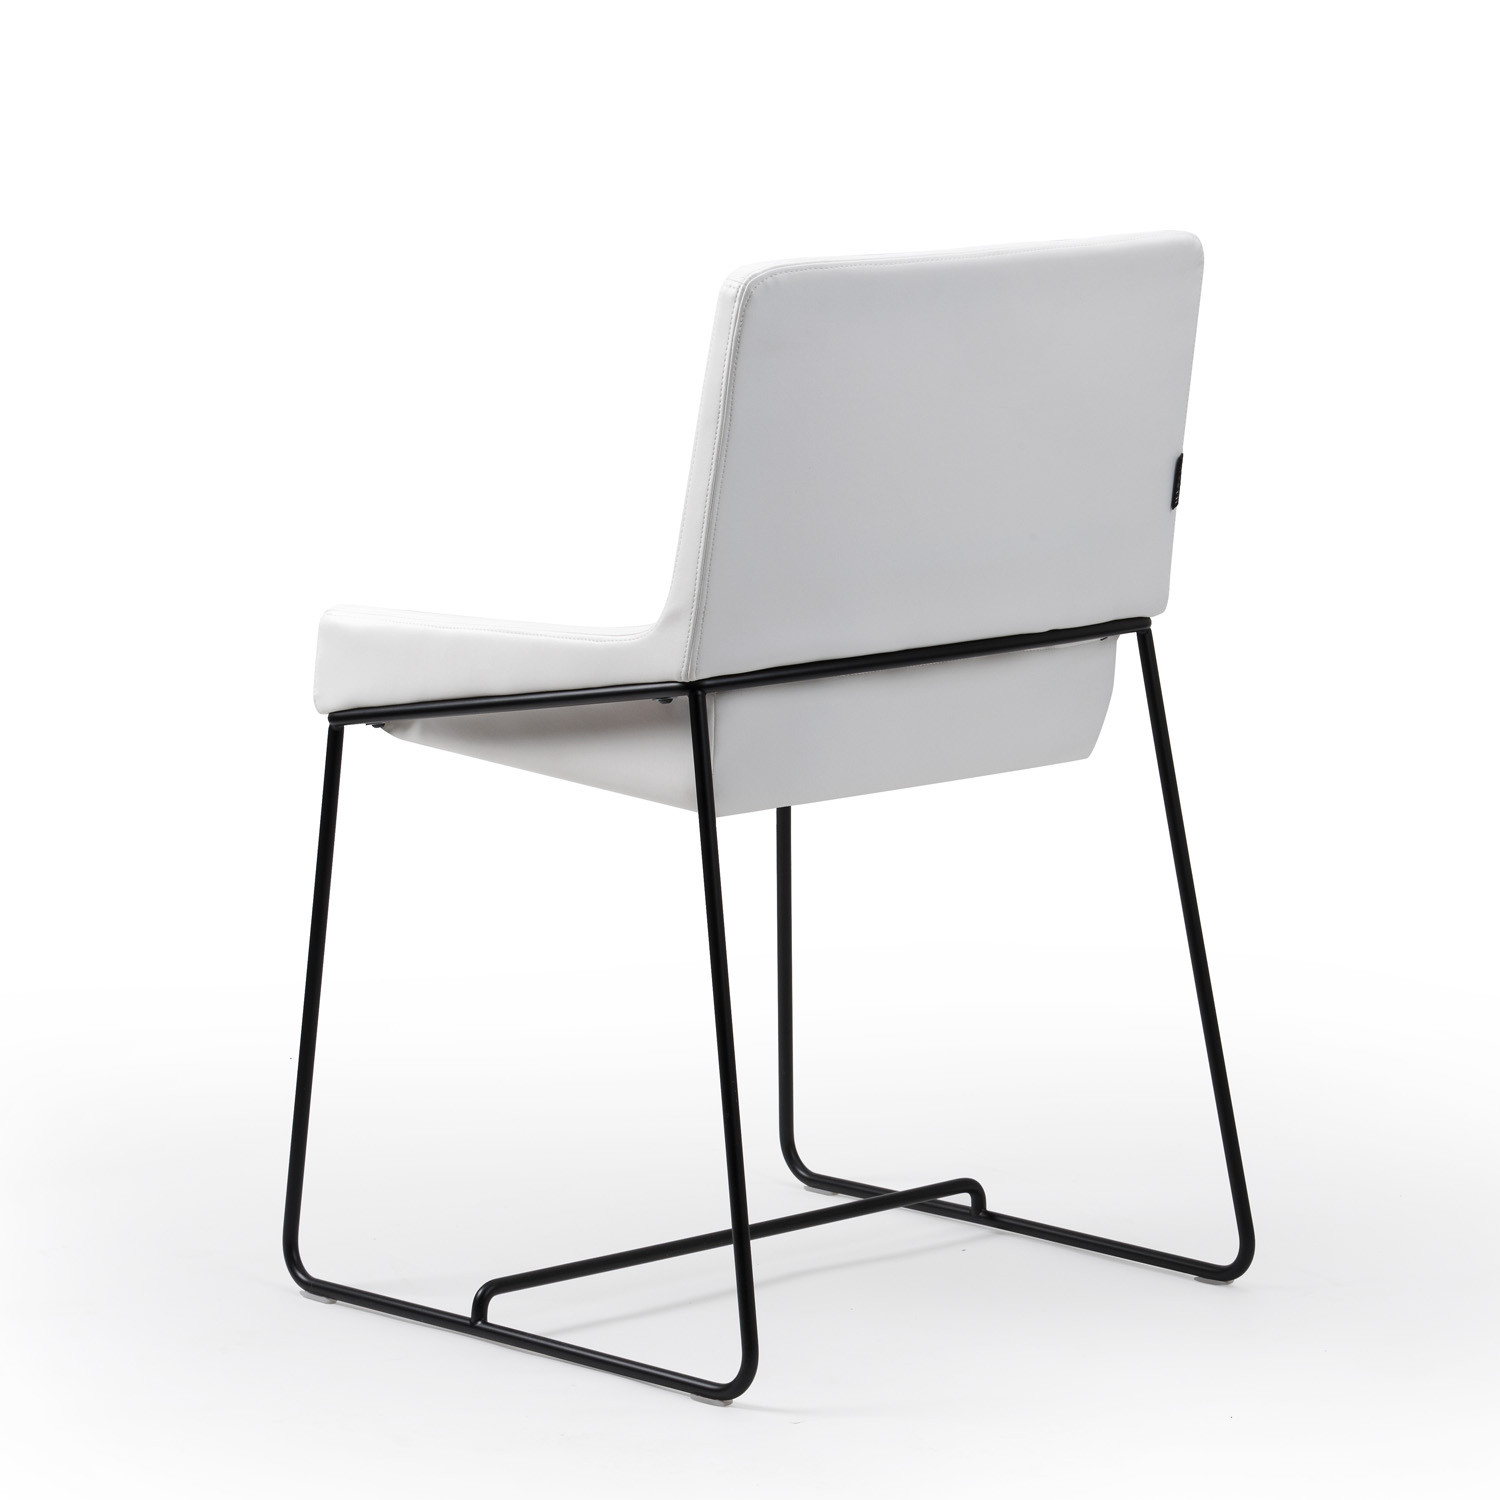 Tonic Sled Base Chair from Lorenz Kaz